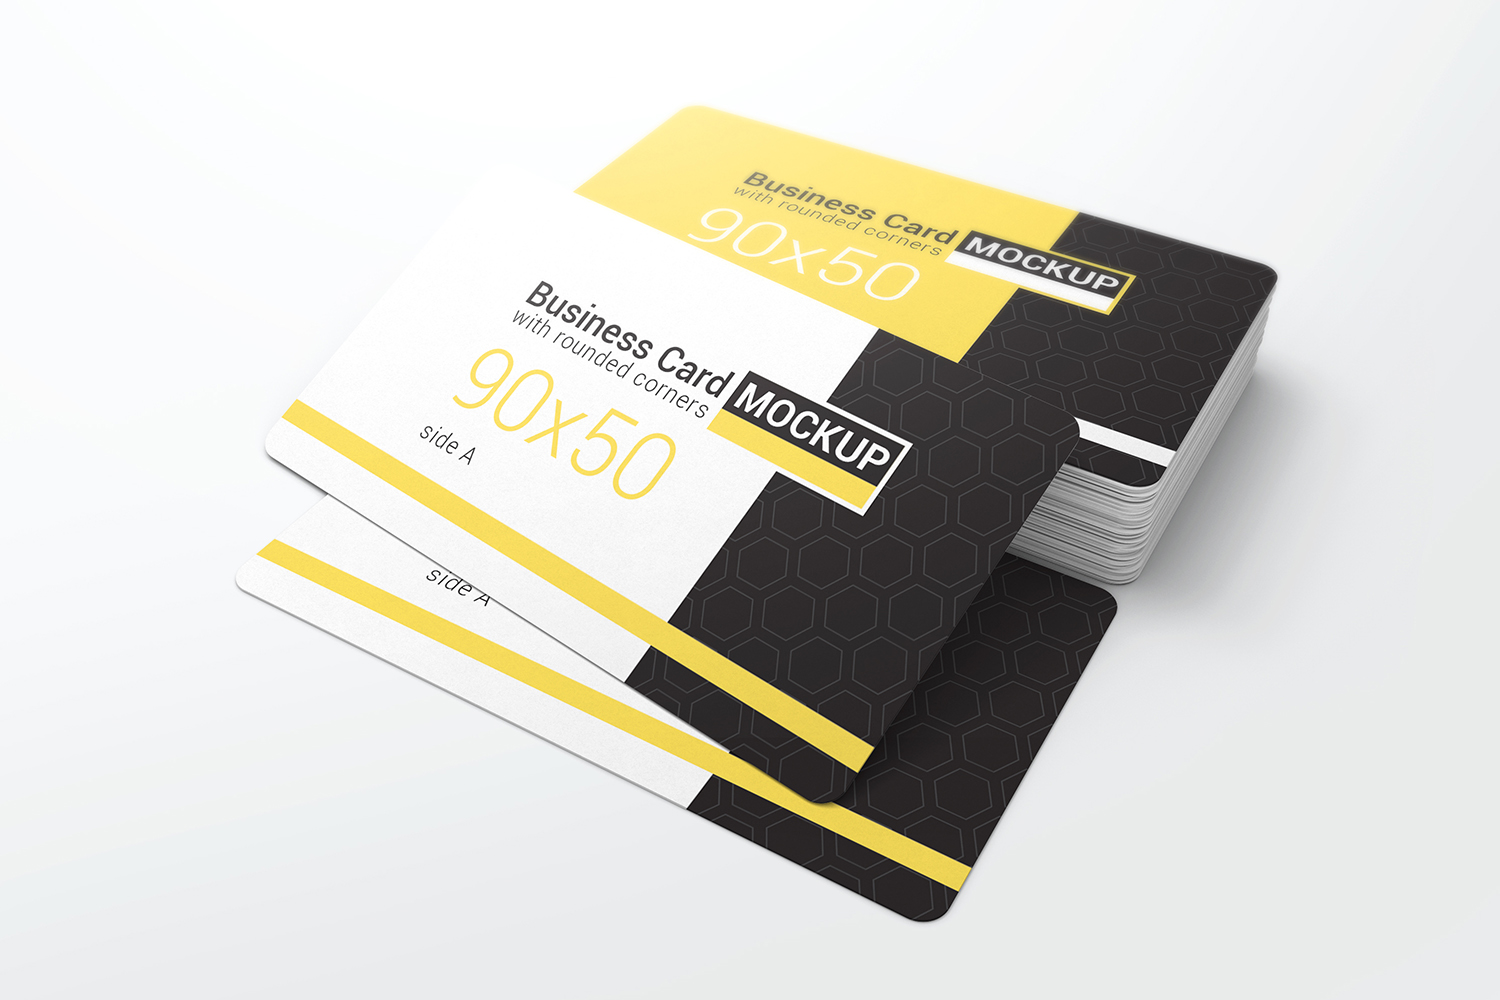 Business Card With Rounded Corners Mockups example image 5